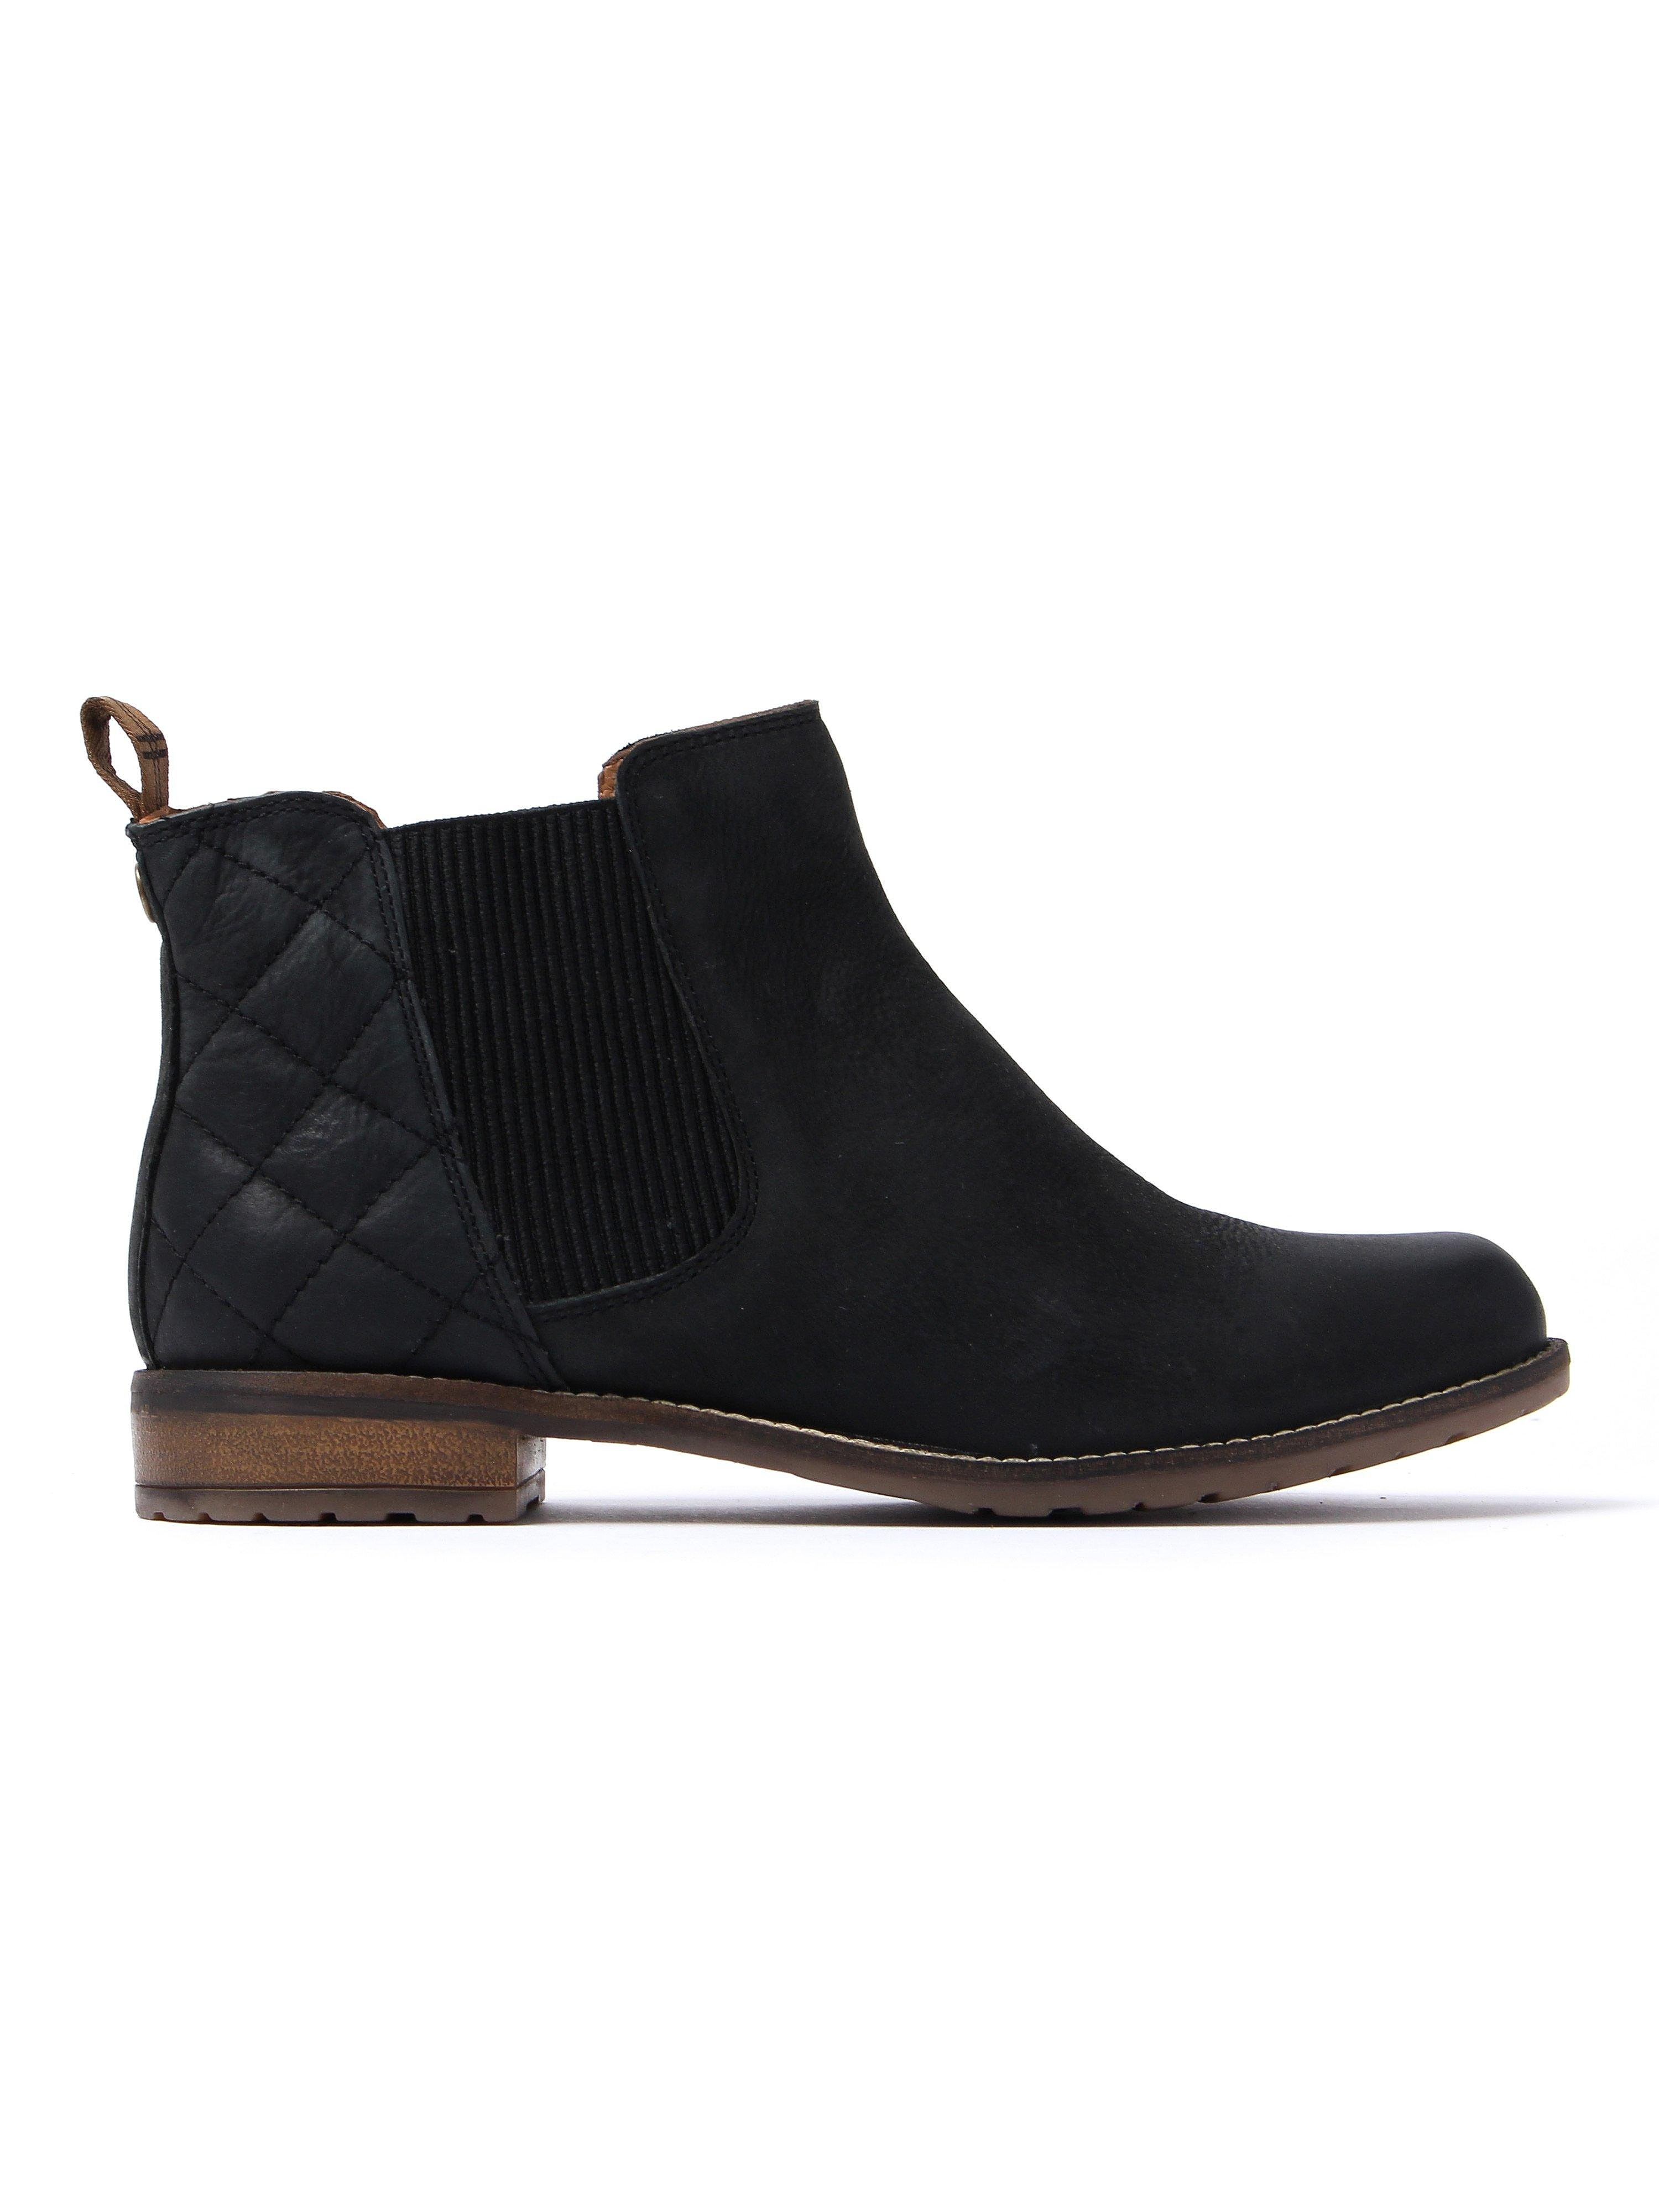 Barbour Women's Abigail Chelsea Boots - Black Leather